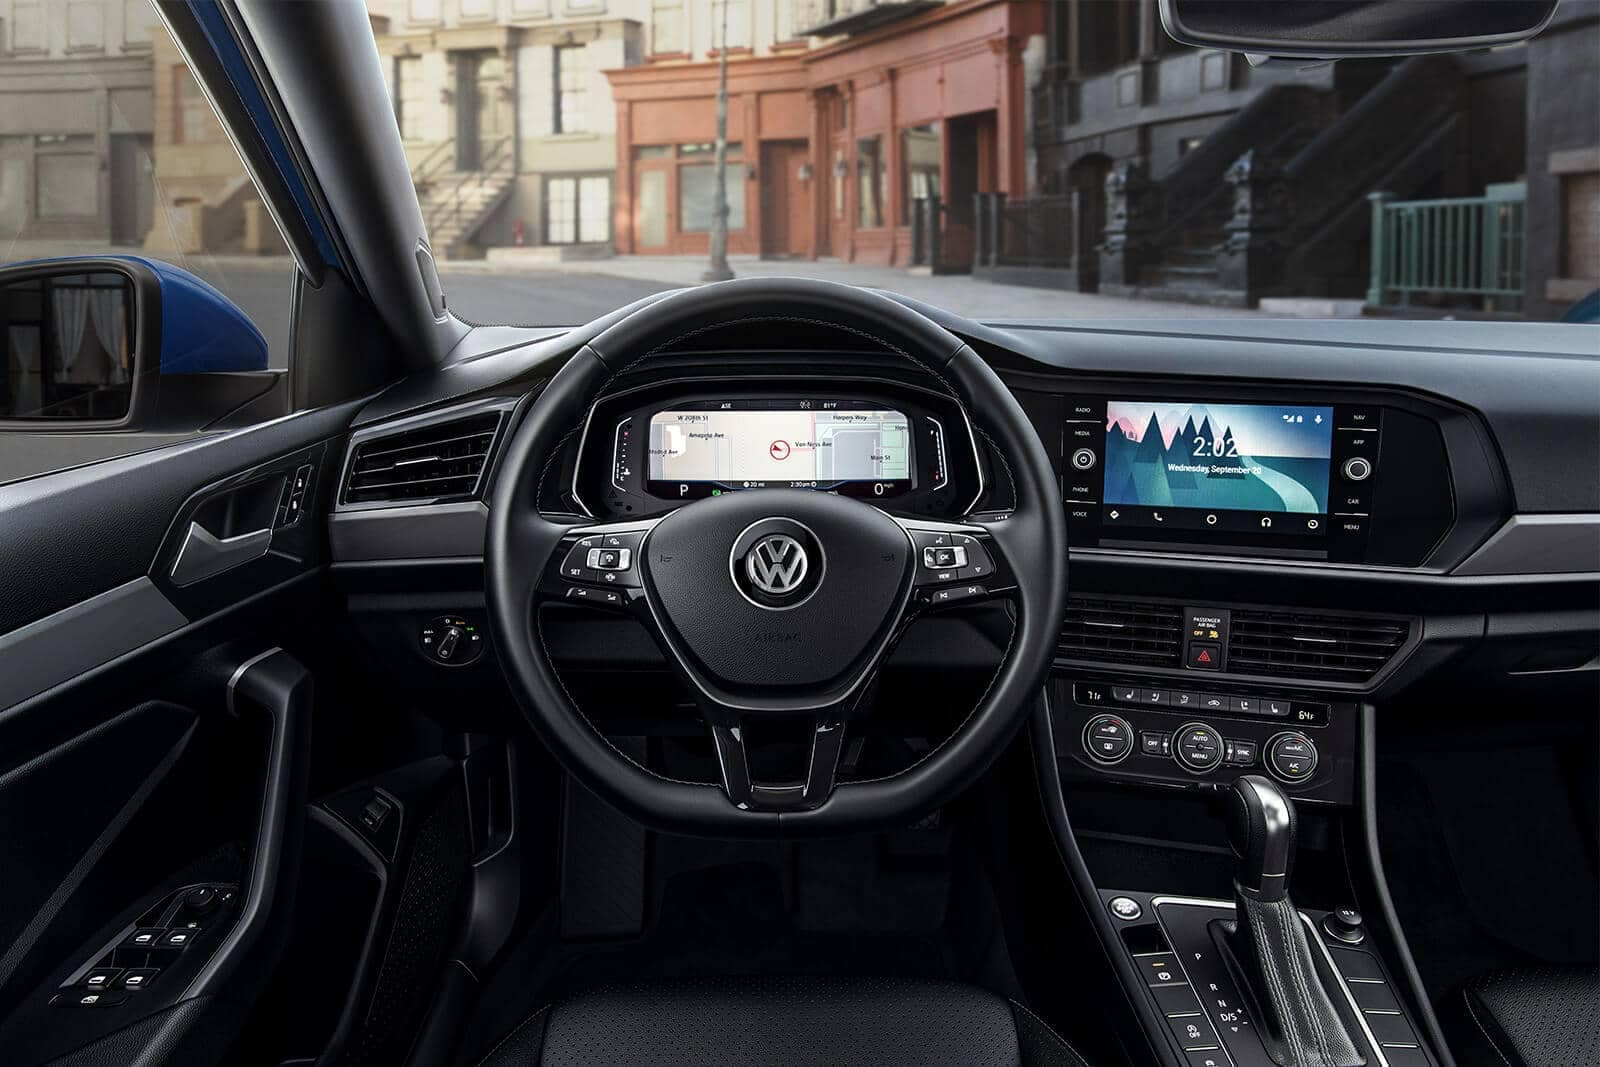 2019 volkswagen jetta price specs pictures lithia vw of des moines. Black Bedroom Furniture Sets. Home Design Ideas